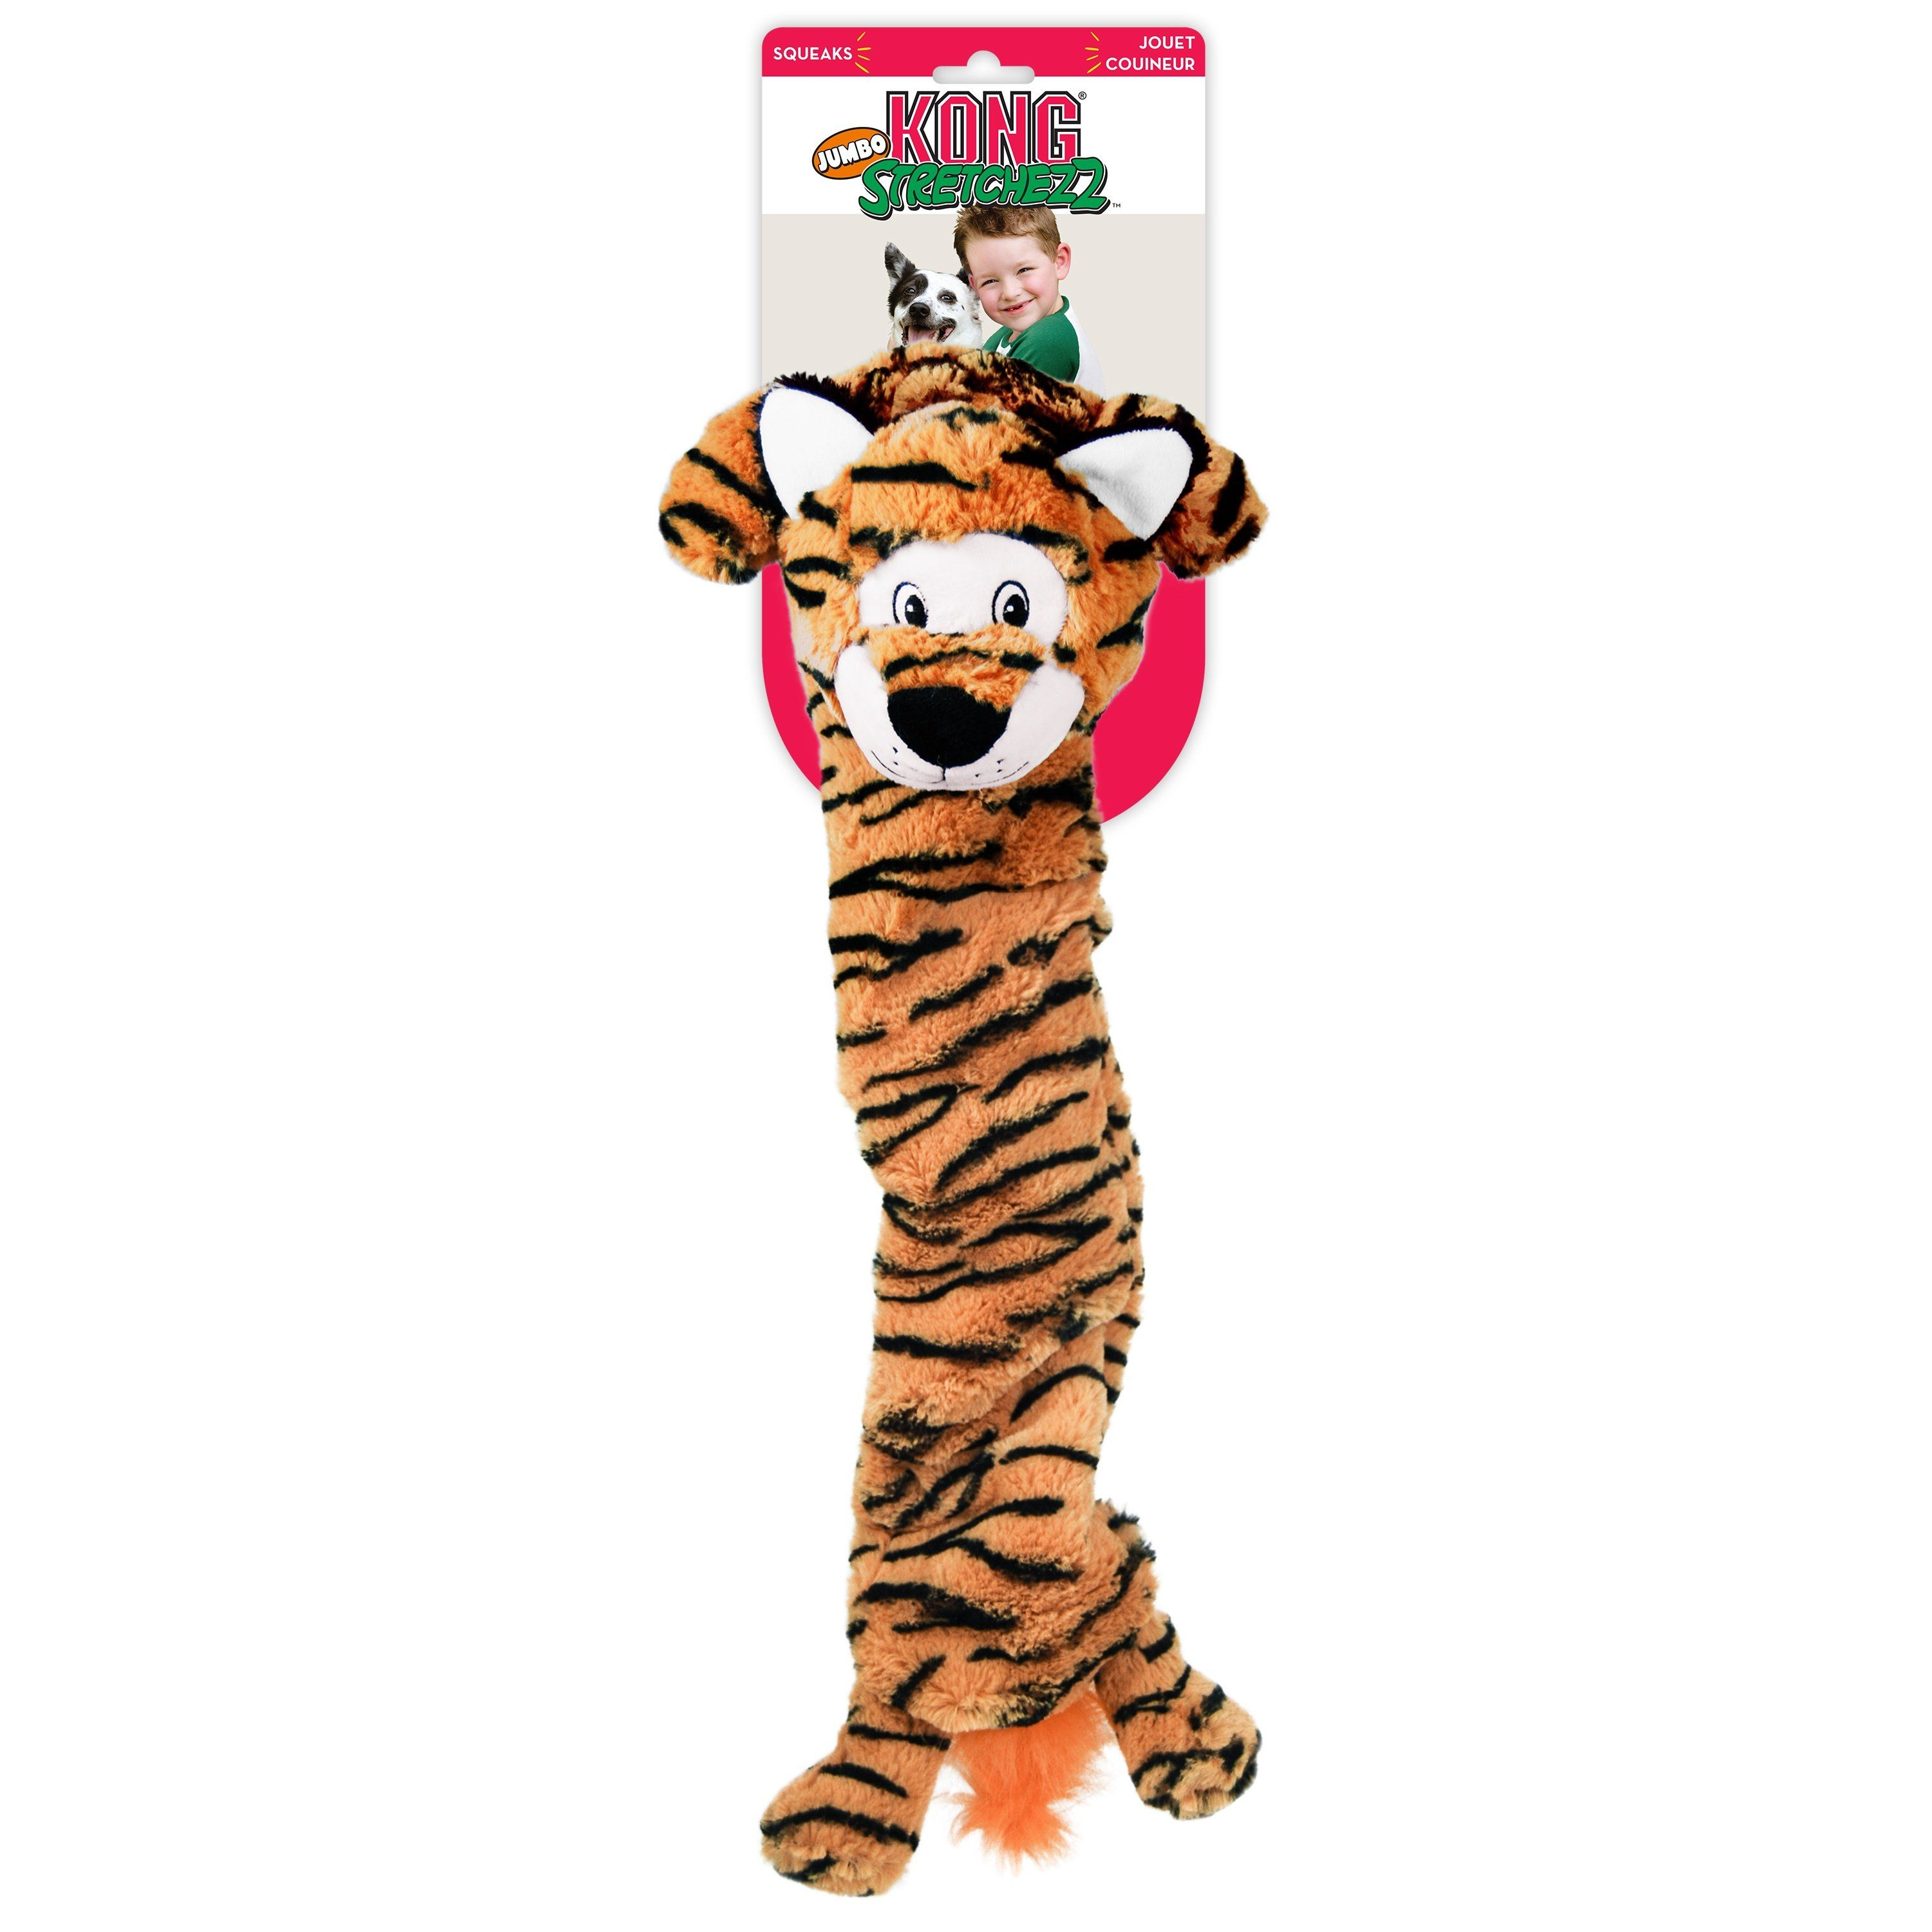 Kong Stretchezz Jumbo Tiger Dog Toys KONG